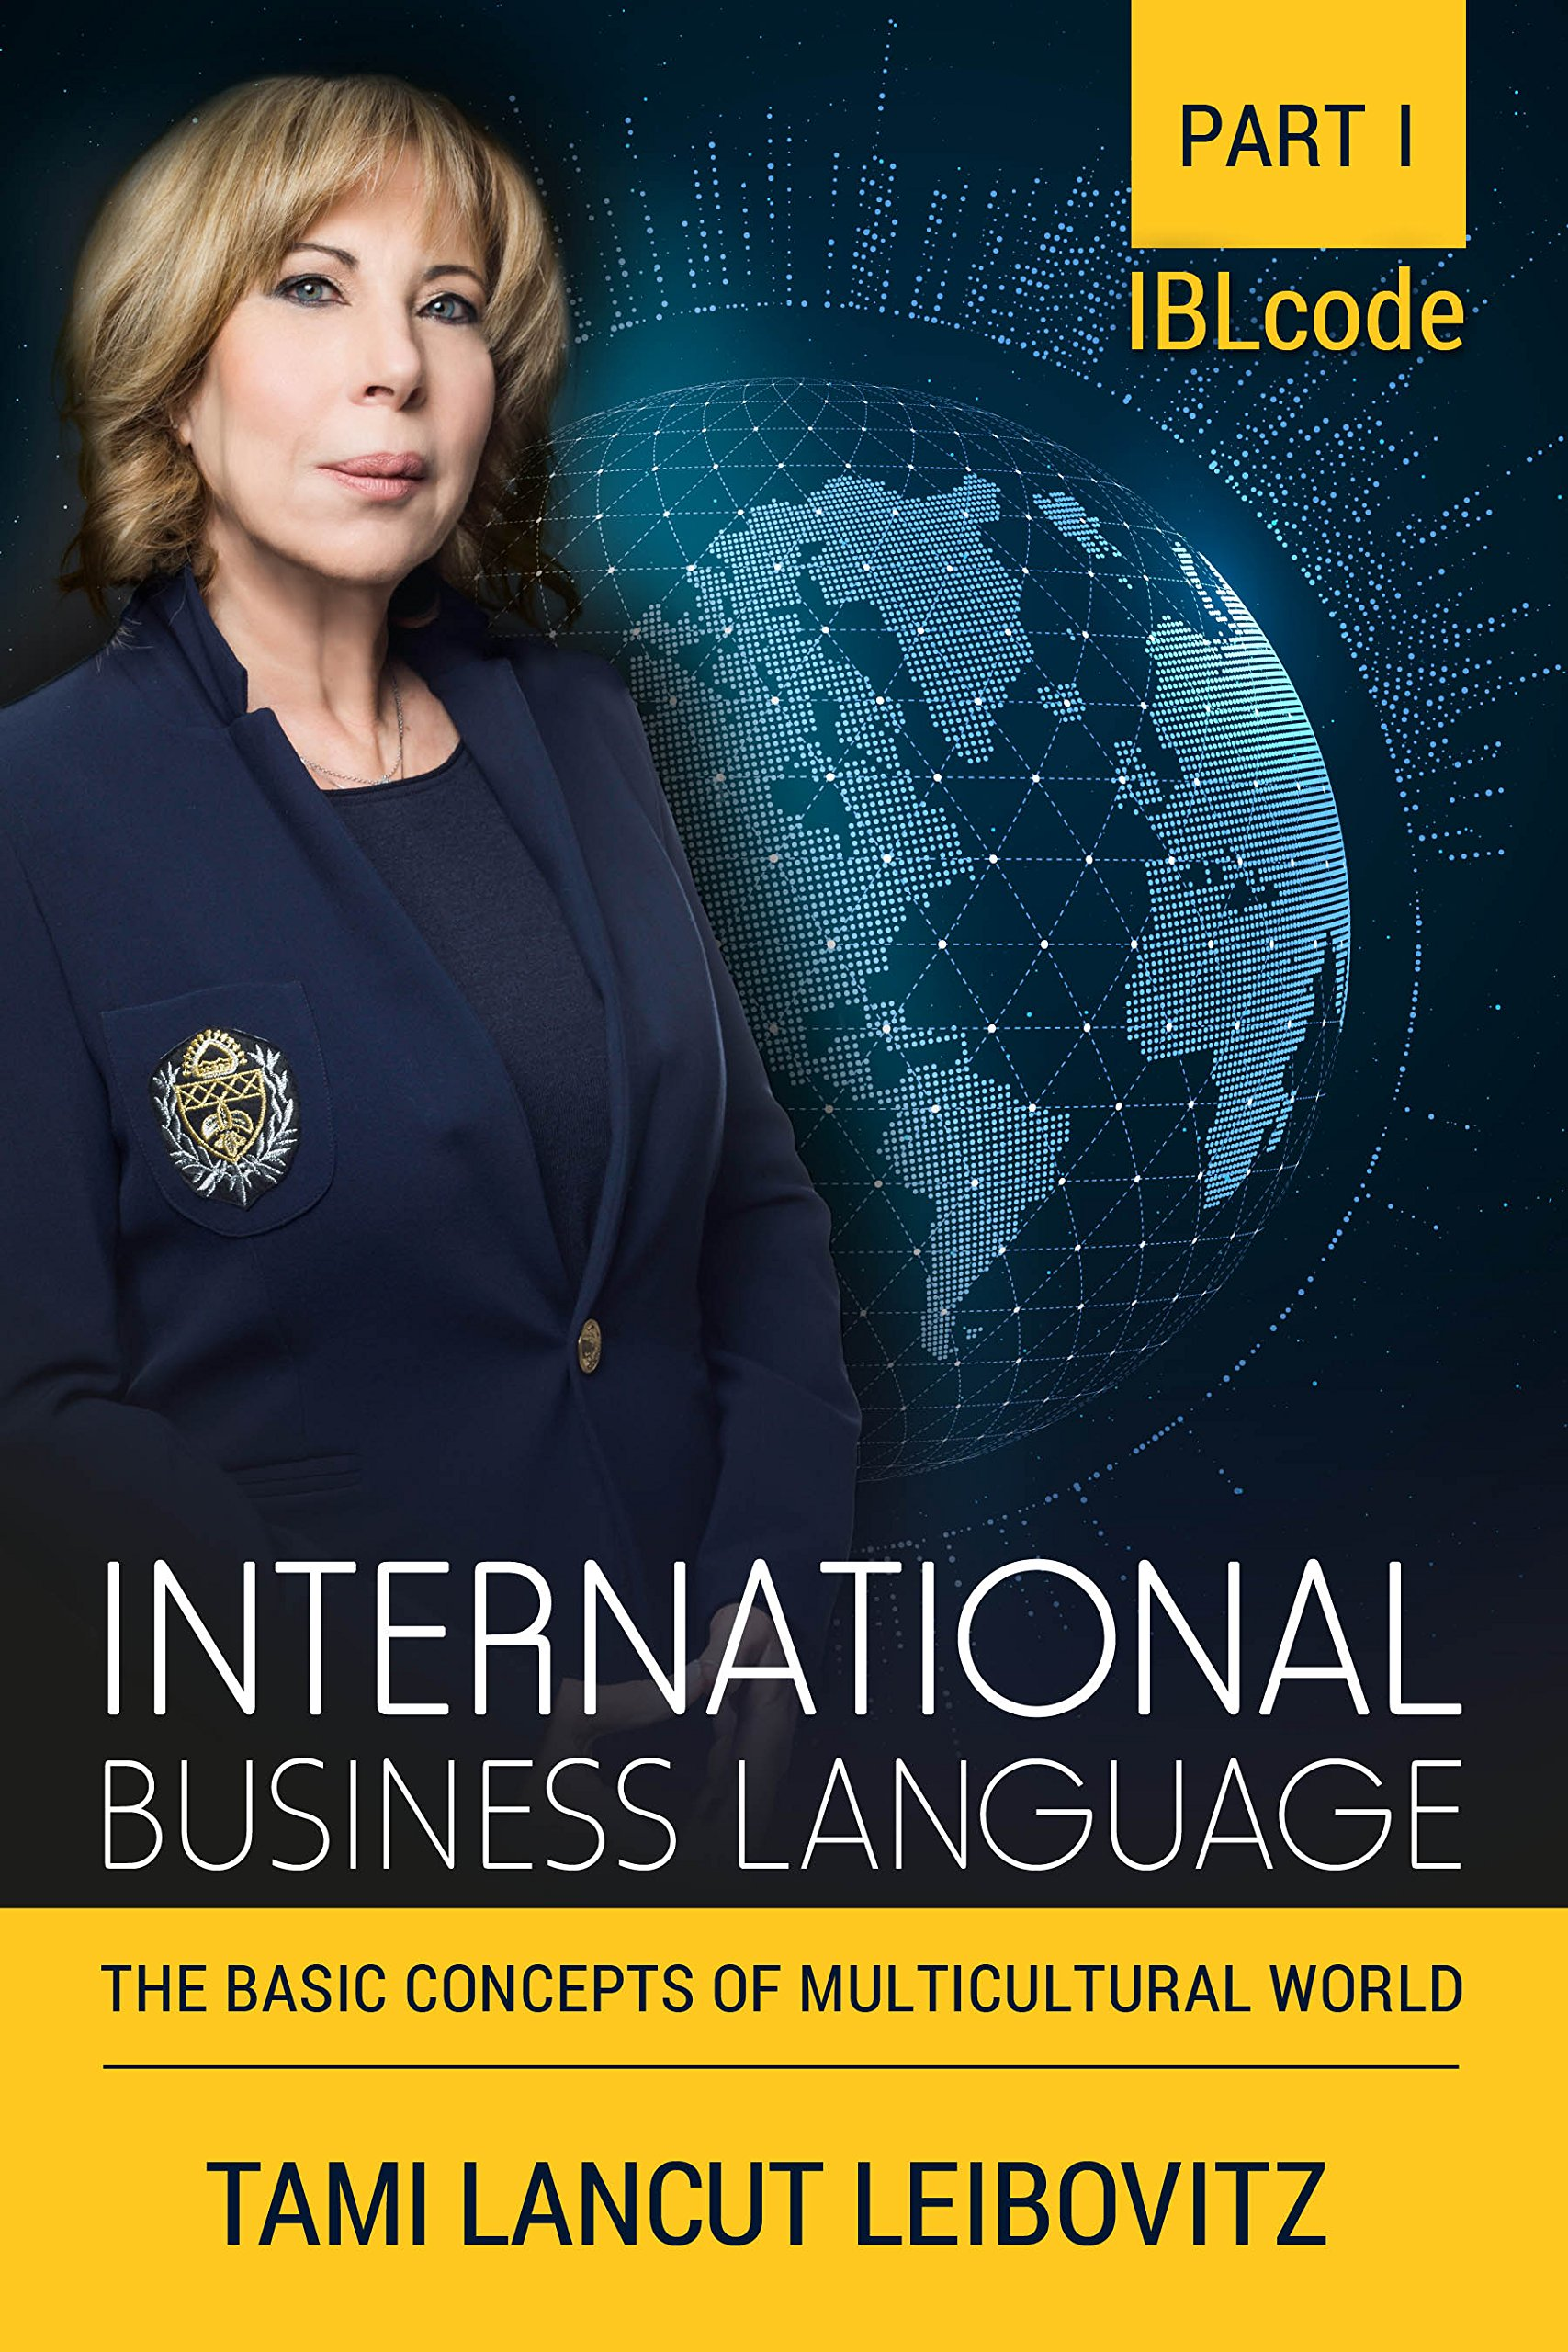 The Basic Concepts of Multicultural World (INTERNATIONAL BUSINESS LANGUAGE CODE Book 1)